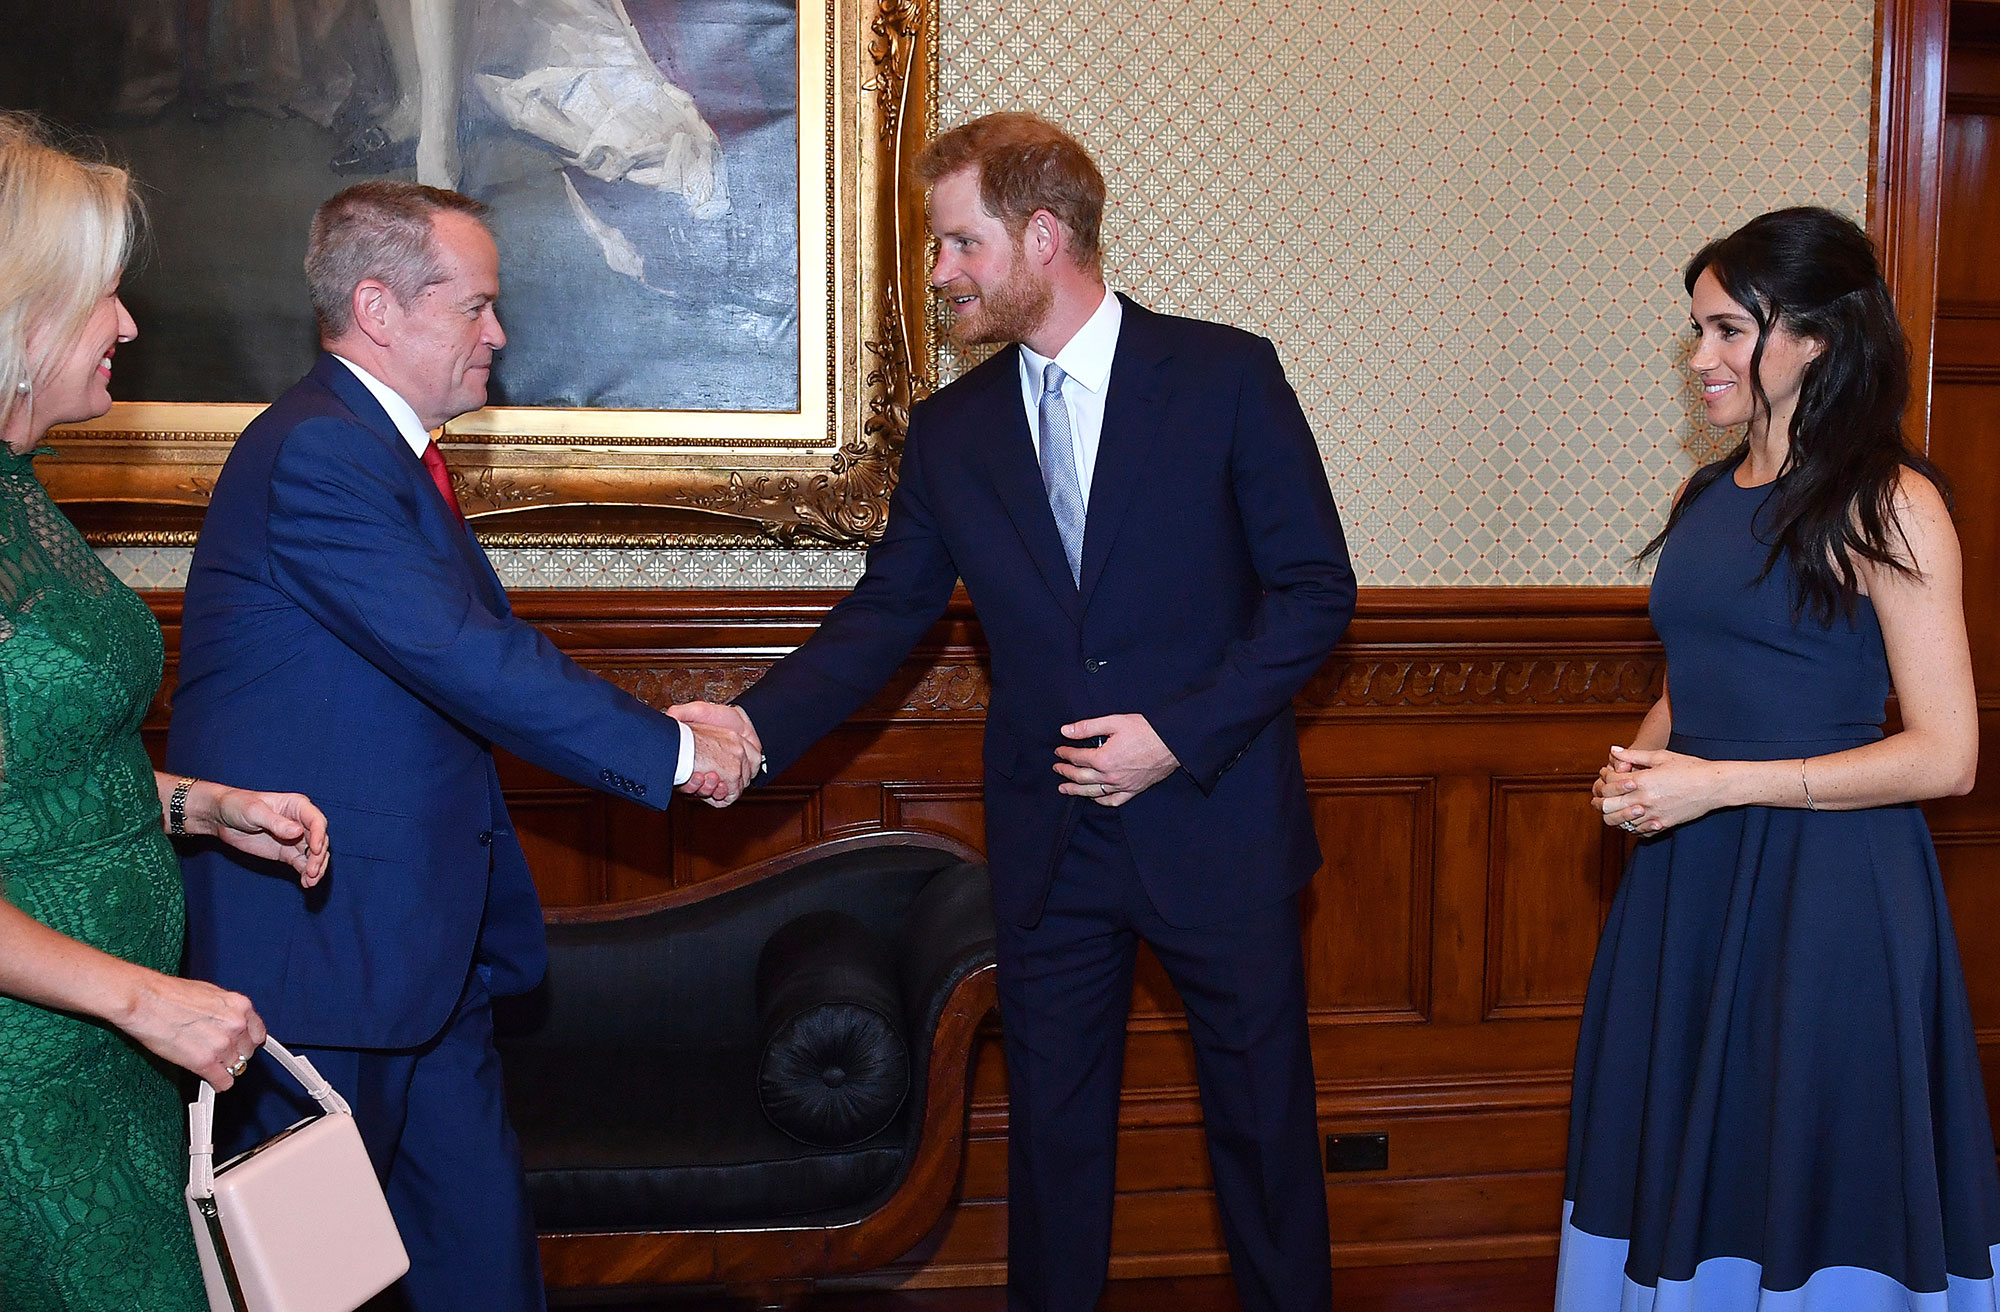 "<div class=""meta image-caption""><div class=""origin-logo origin-image none""><span>none</span></div><span class=""caption-text"">Prince Harry and Meghan, Duchess of Sussex, meet Australia's opposition leader Bill Shorten and his wife Chloe Shorten at Admiralty House in Sydney. (Saeed Khan/Pool Photo via AP)</span></div>"